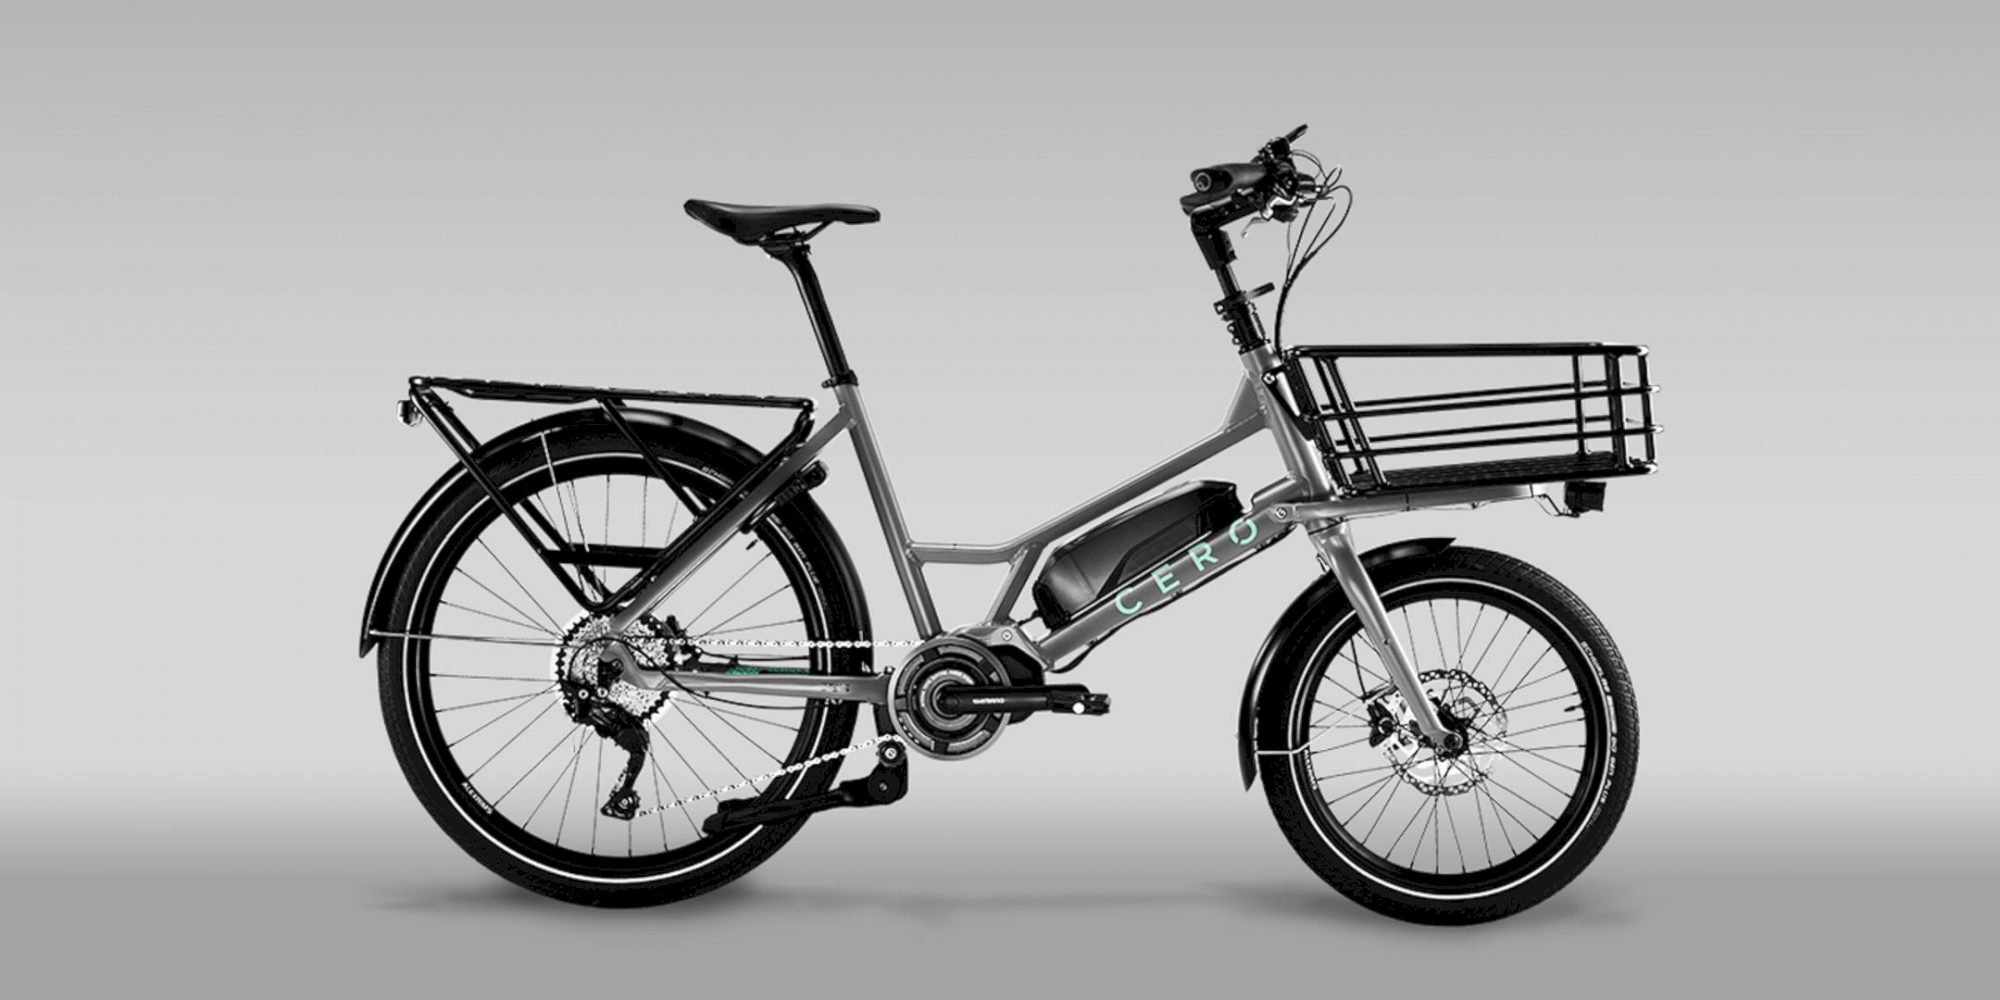 Cero One: The Ultimate Compact Electric Bike